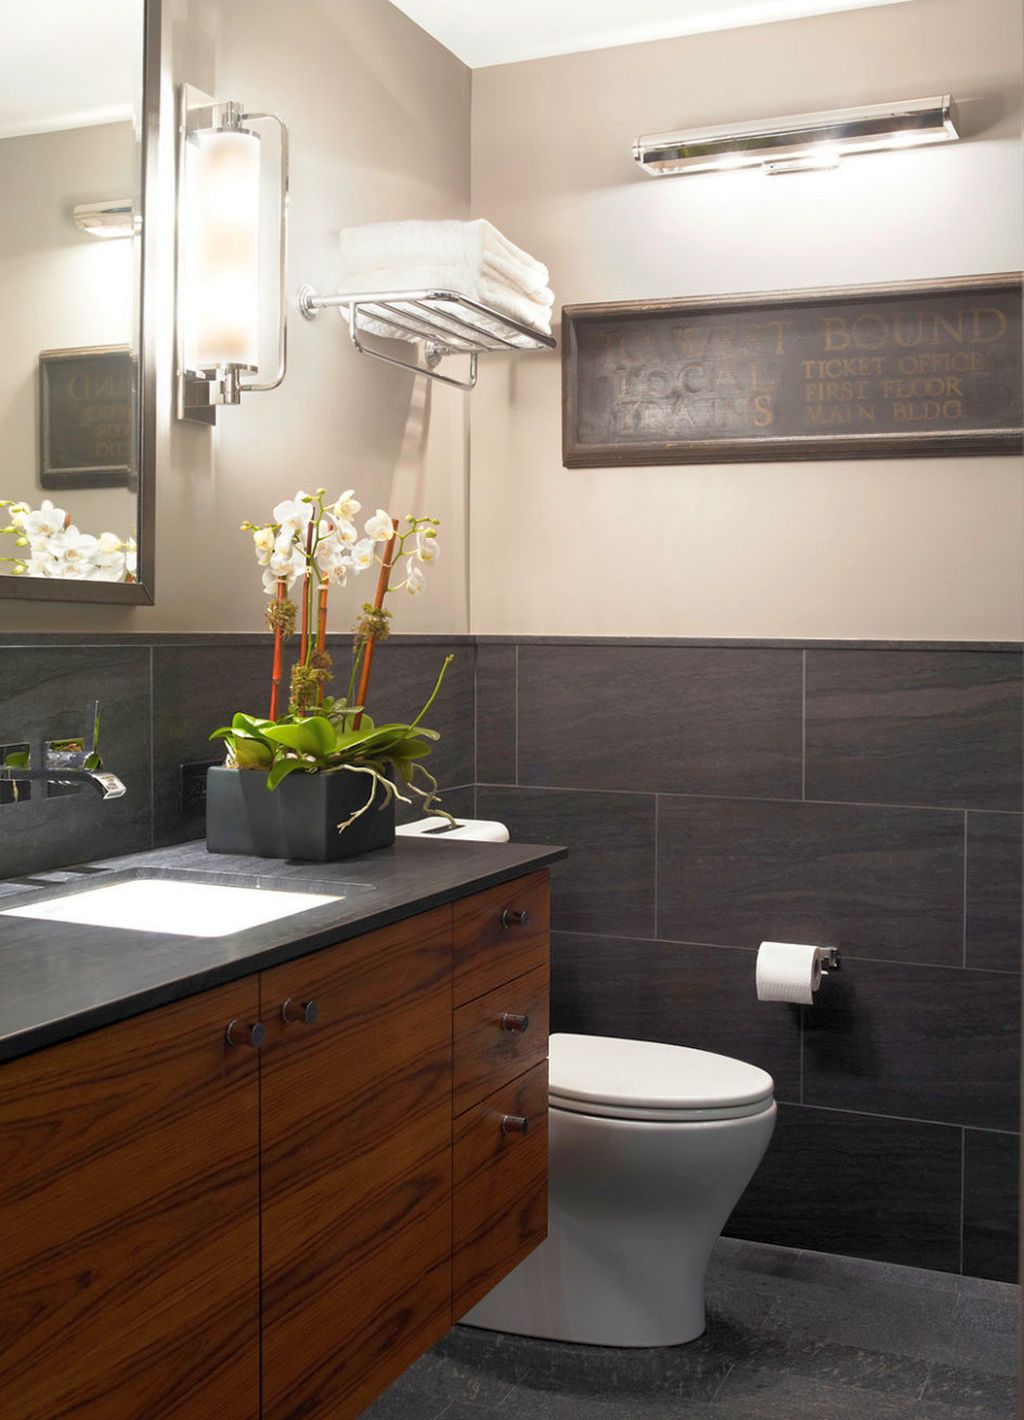 Black Rustic Bathroom Vanity: Tiny Bathroom Design Ideas In Black And White With Rustic